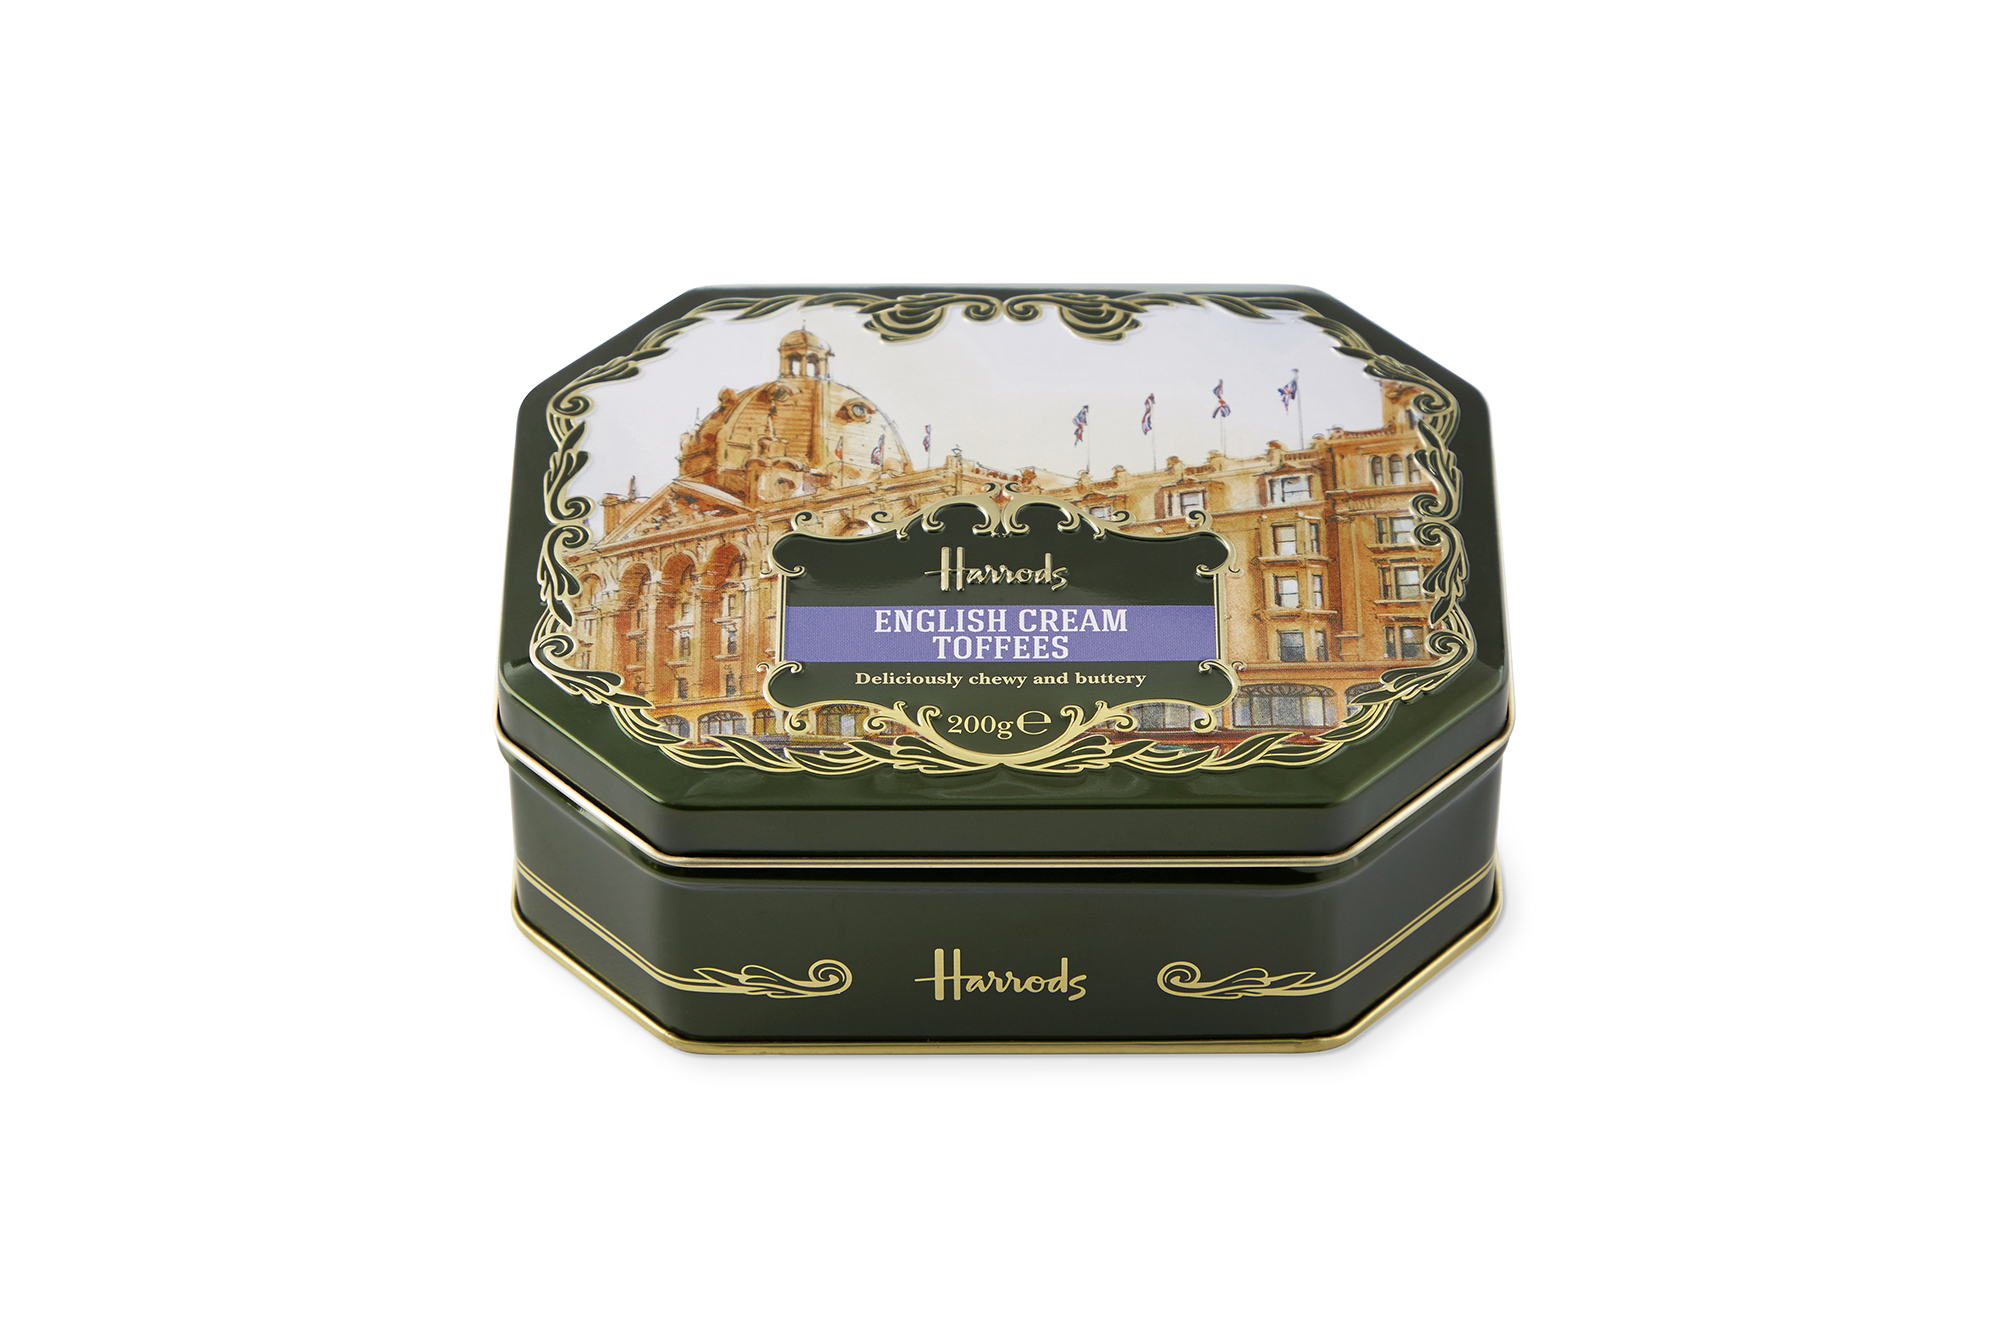 Harrod's Heritage English Cream Toffee